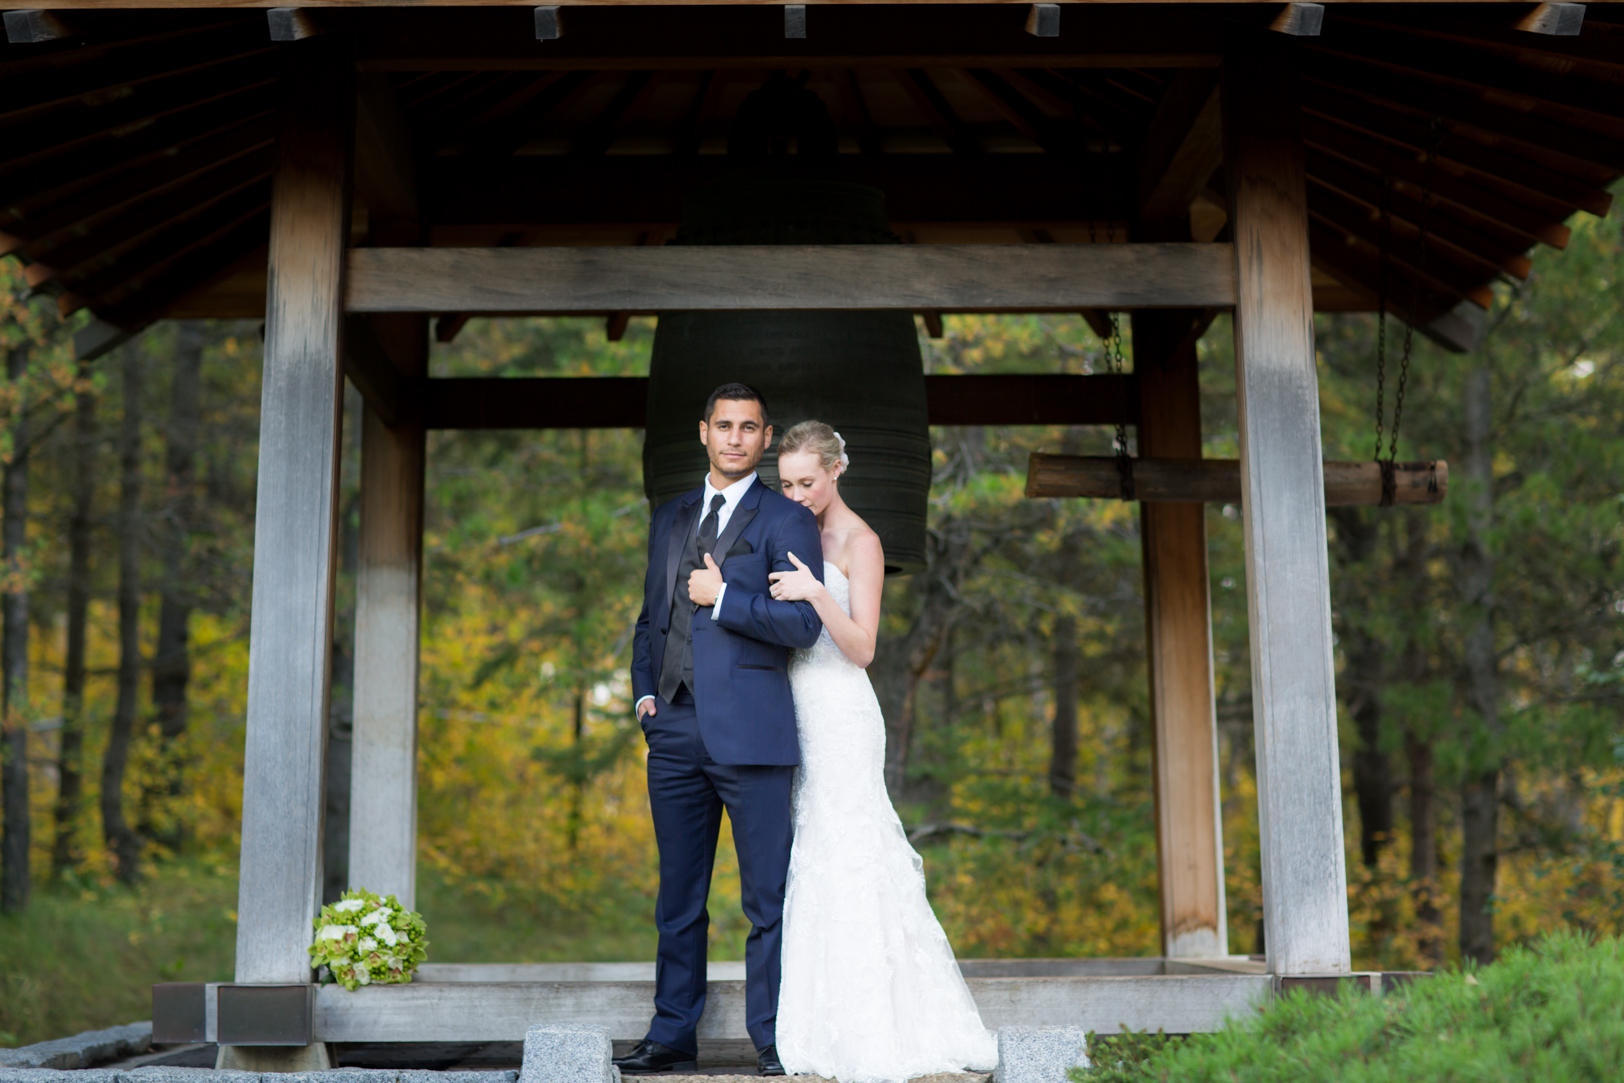 Wedding pictures from U of A Devonian Botanic Gardens